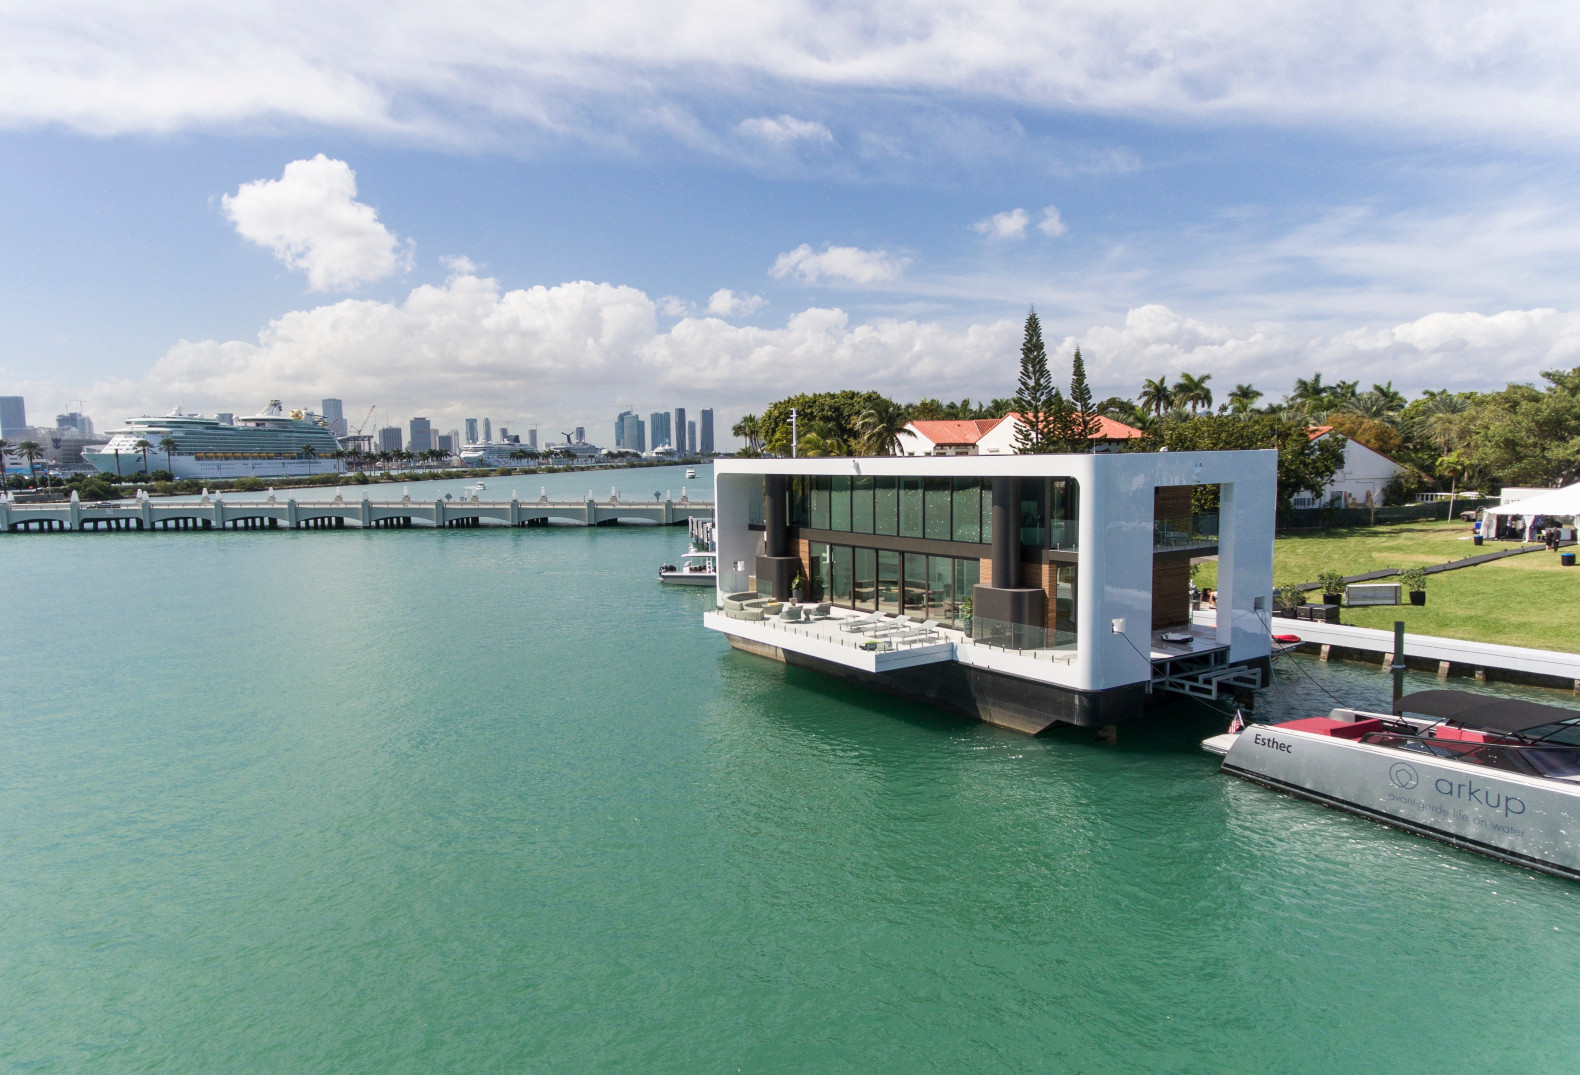 These solar-powered floating homes are built to withstand floods and hurricanes